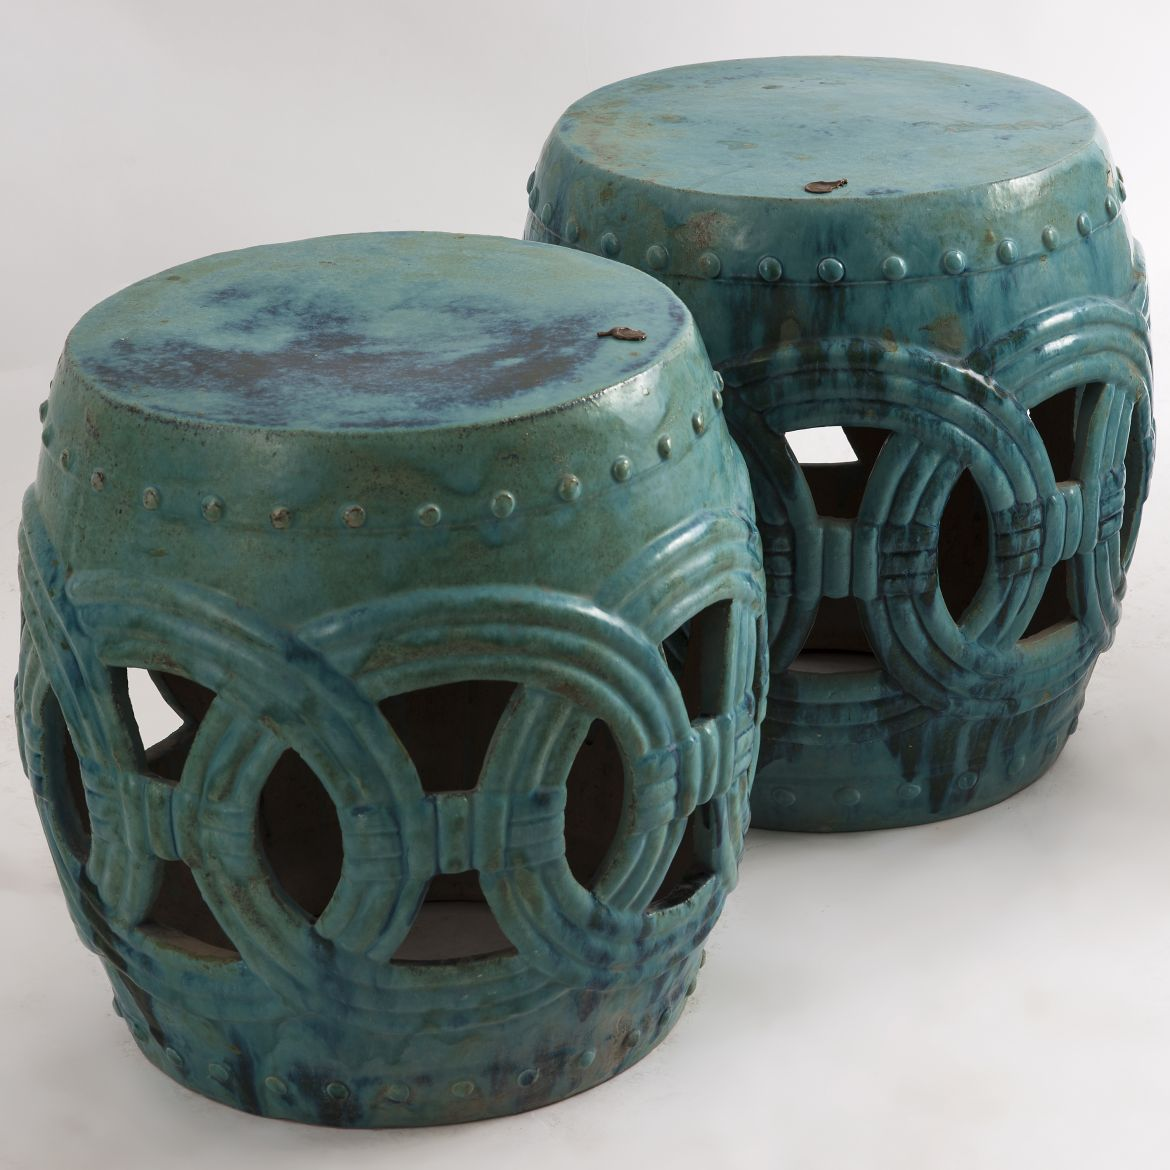 Green Glaze Barrel Stools